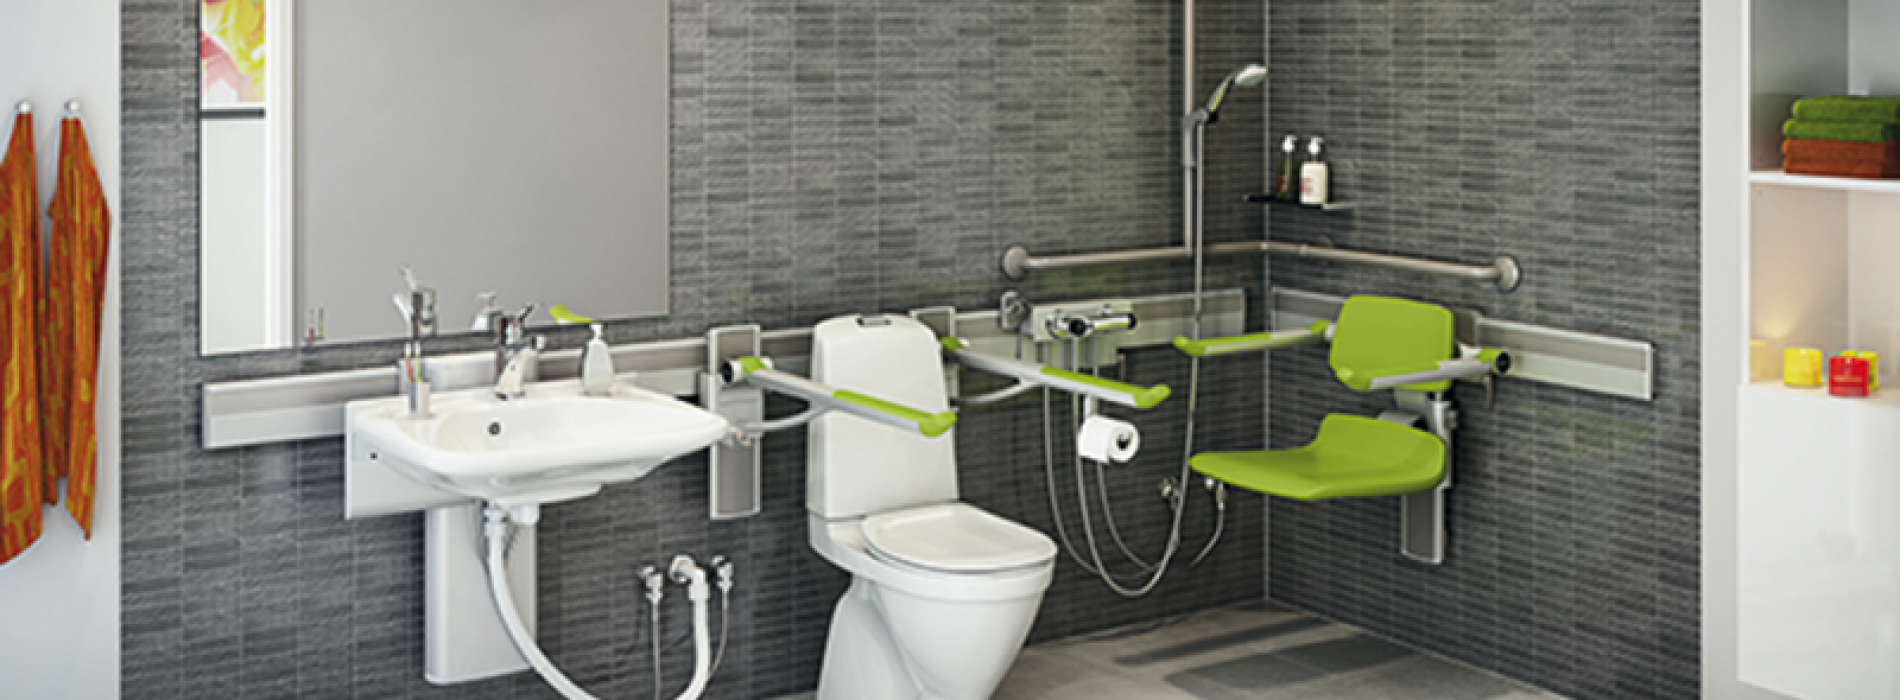 How to create an accessible bathroom – Accessible Bathroom